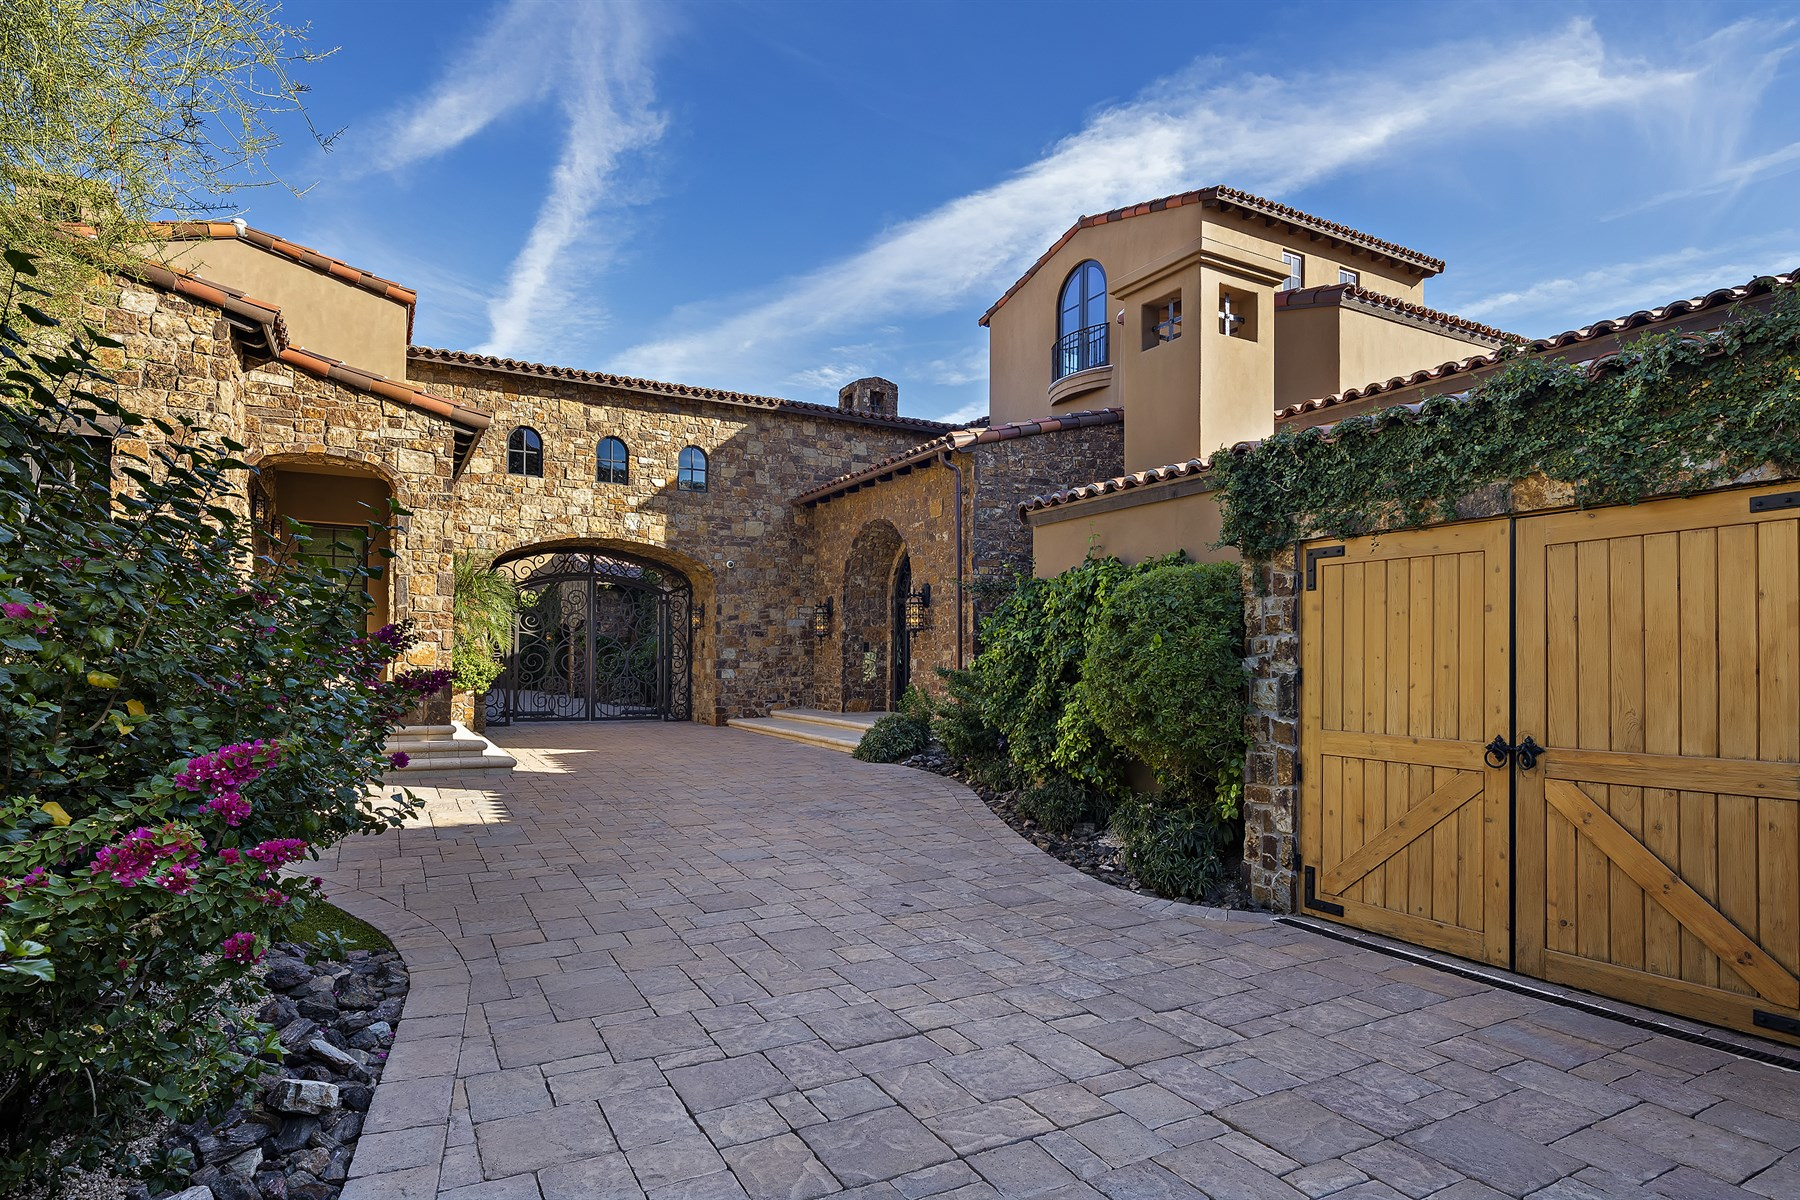 Moradia para Venda às Exquisite European Manor in The Exclusive Upper Canyon at Silverleaf 20913 N 104th Street #1488 Scottsdale, Arizona, 85255 Estados Unidos